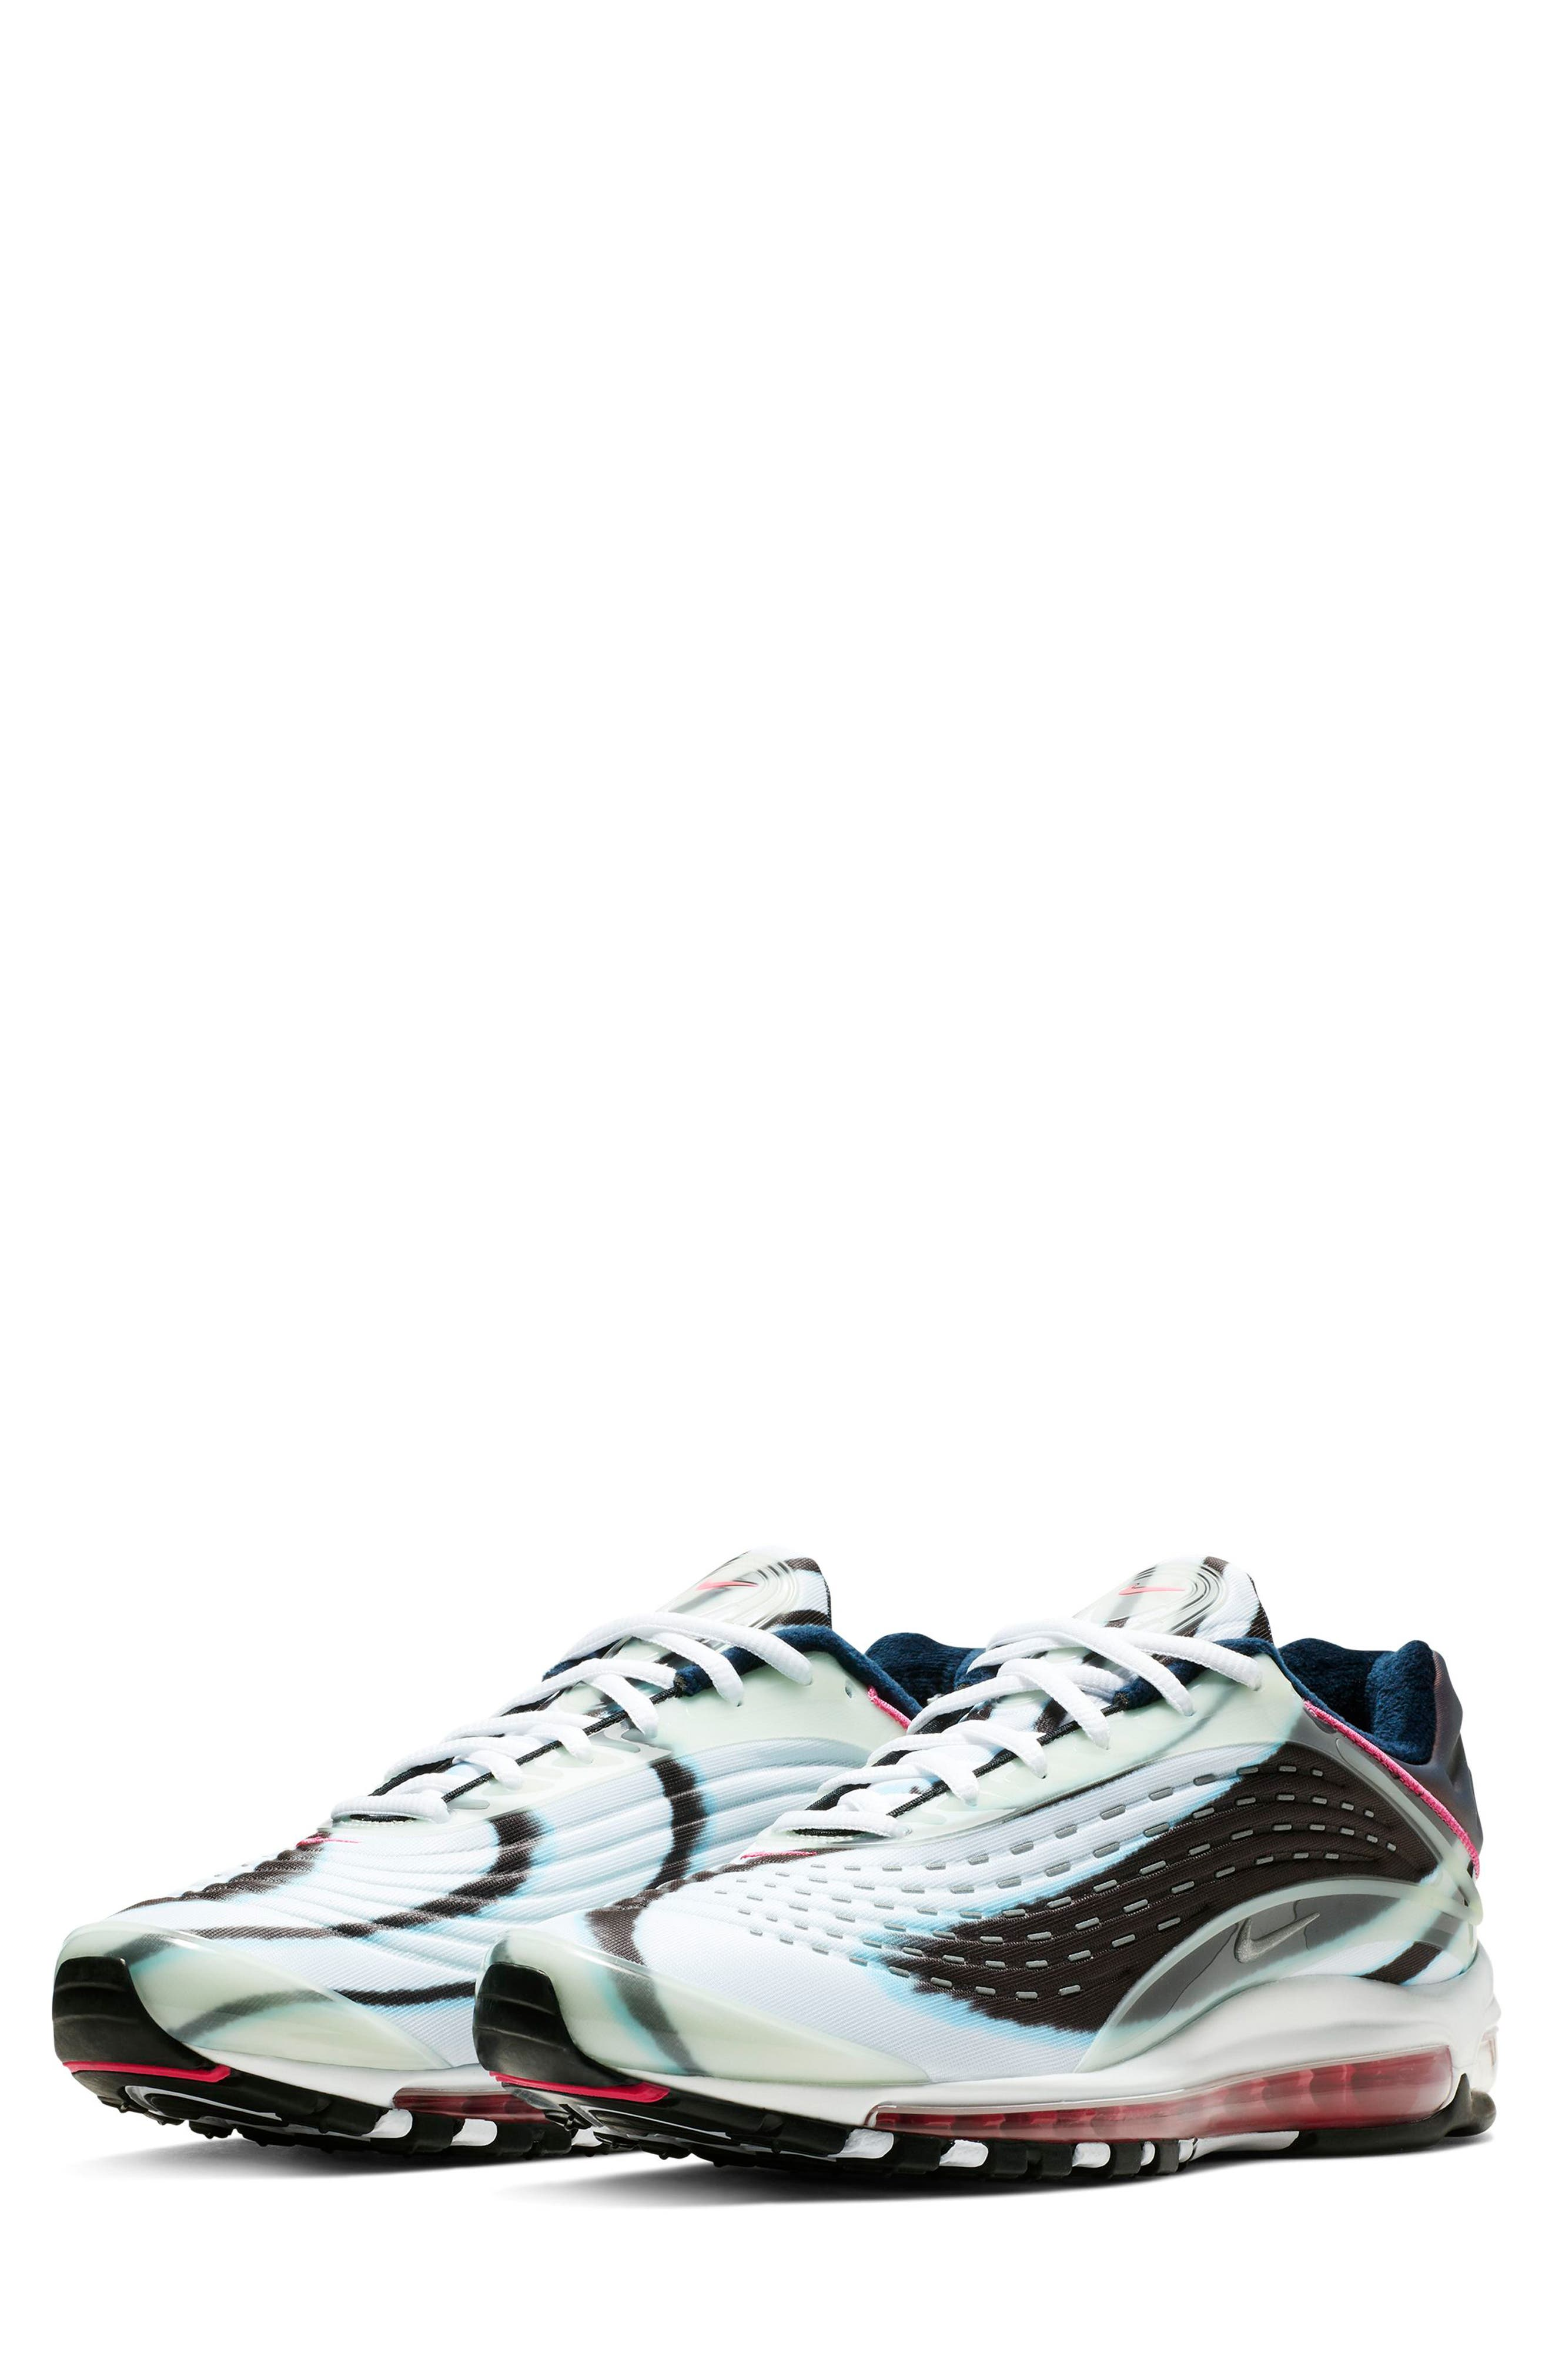 Air Max Deluxe Sneaker,                             Main thumbnail 1, color,                             GREEN/ SILVER/ OBSIDIAN/ BLACK